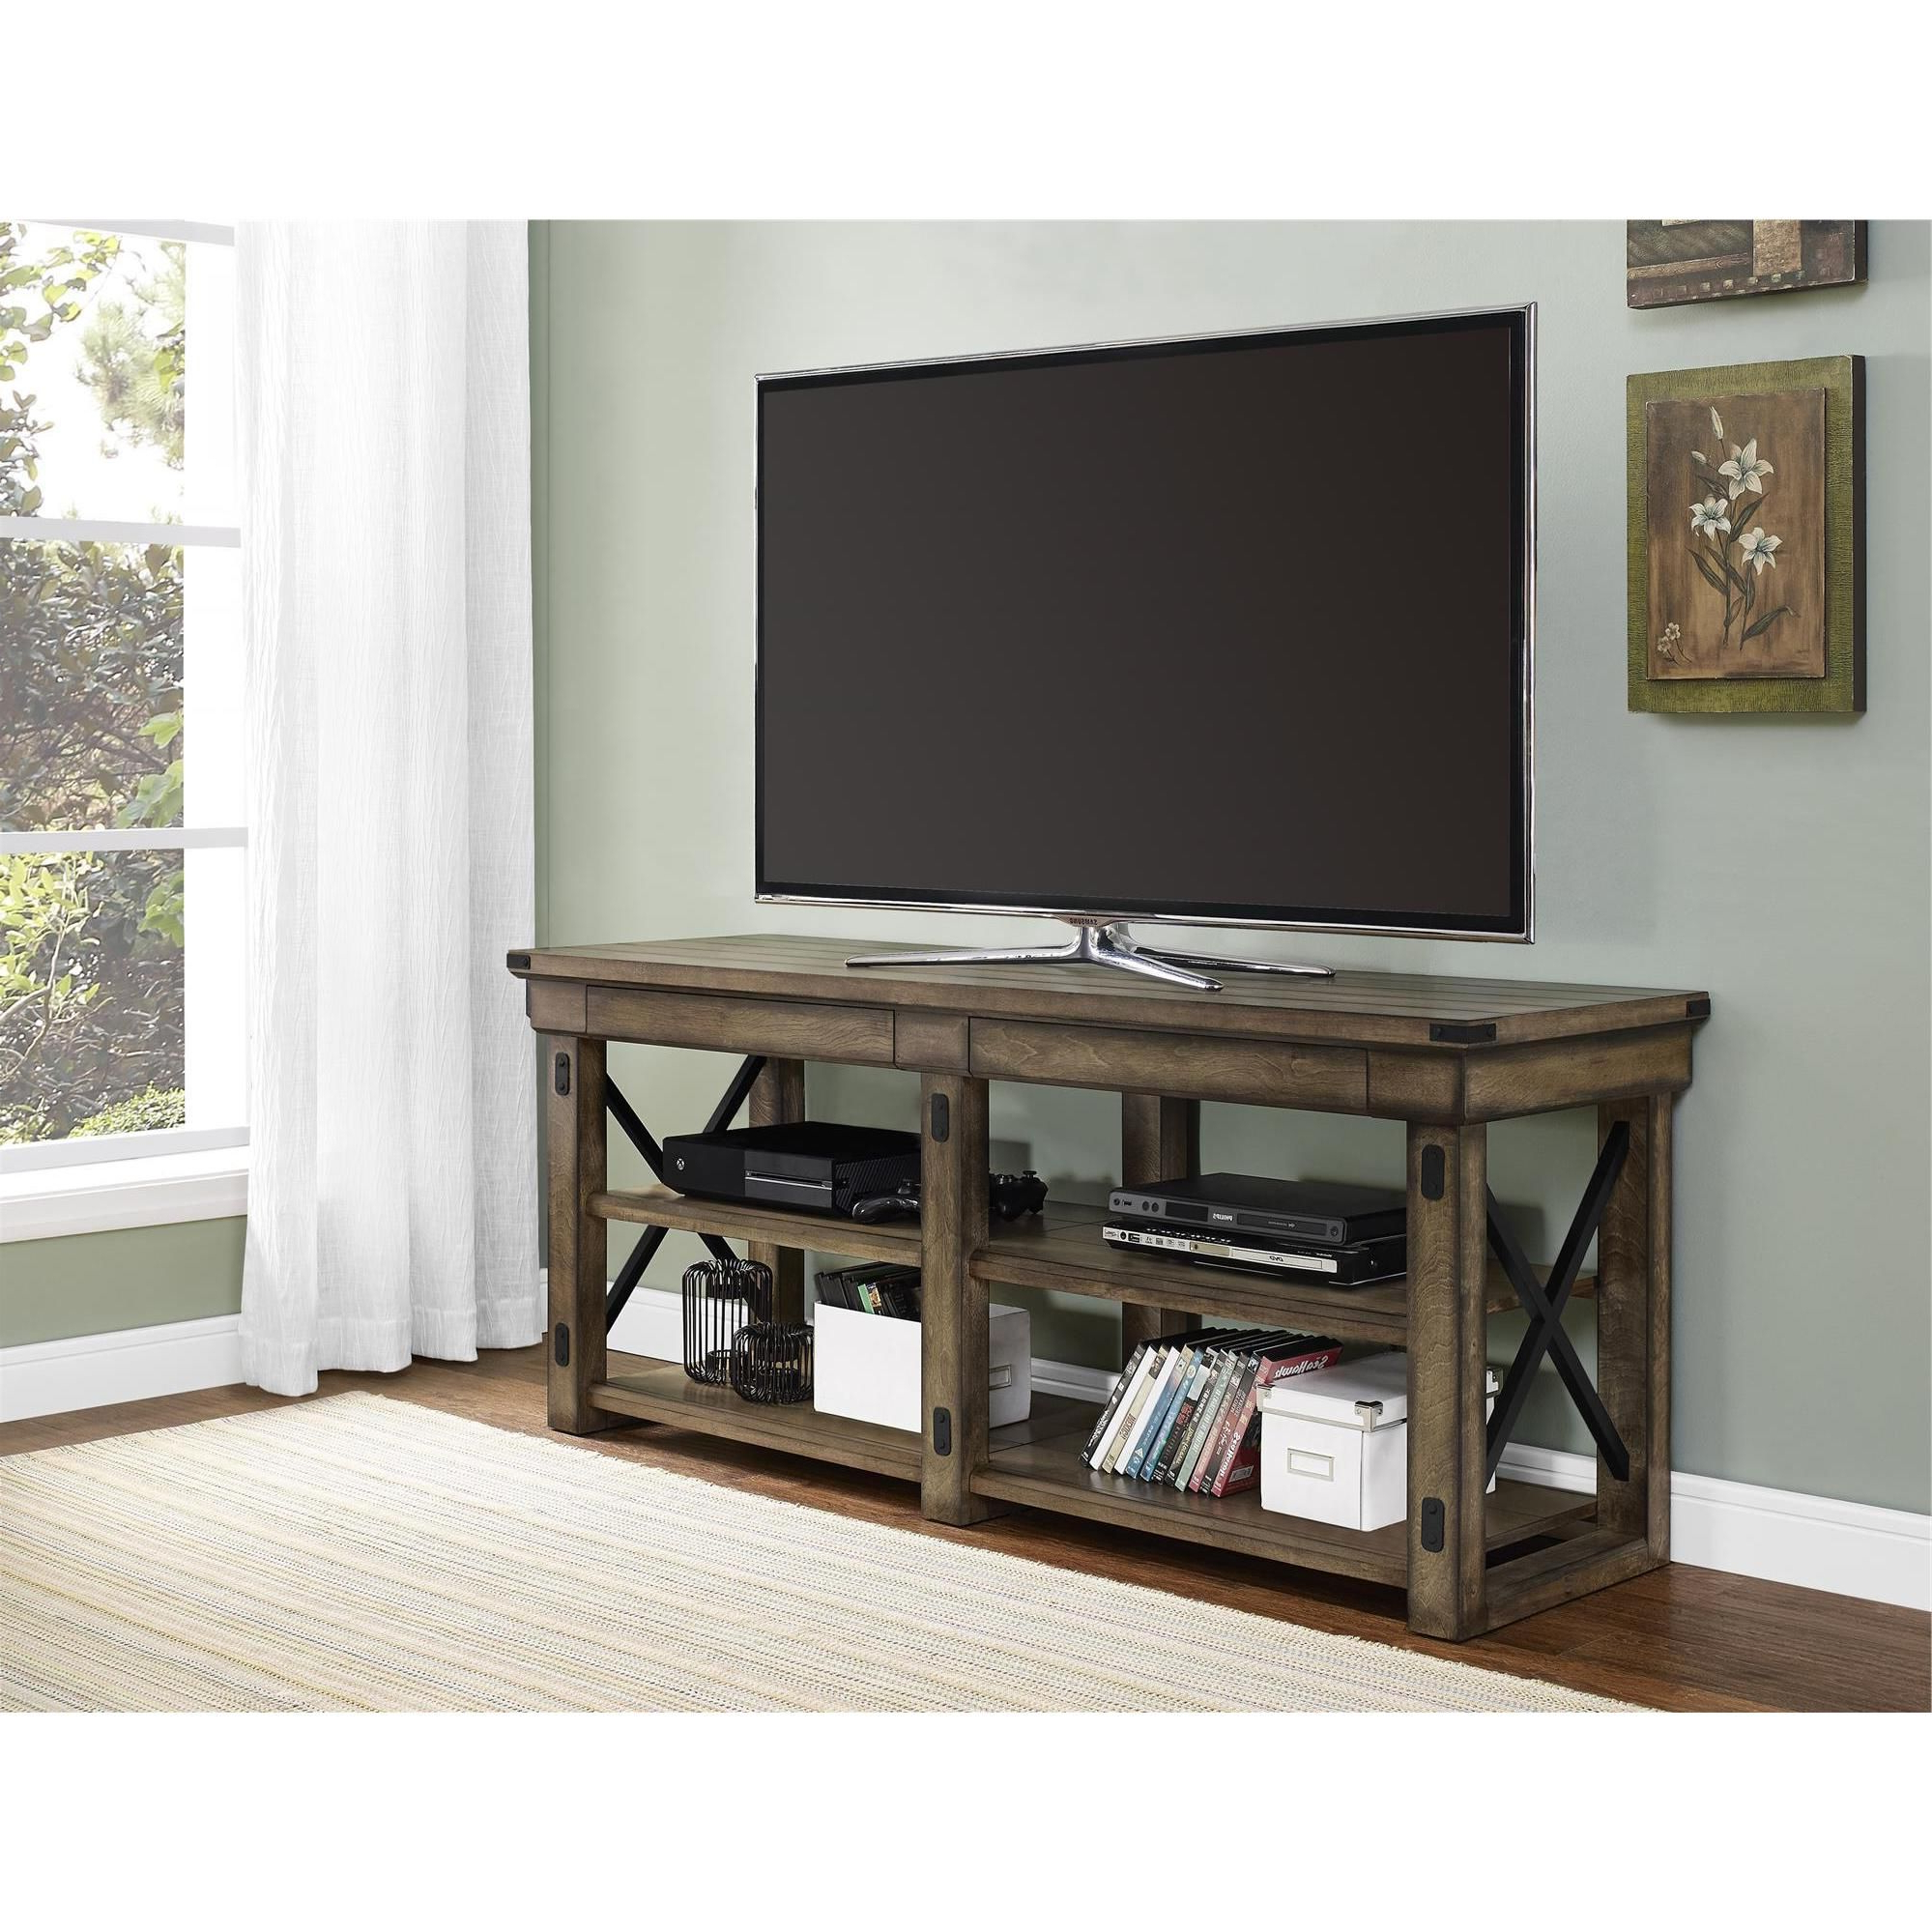 Trendy Bring Beauty And Better Organization Into Your Living Room With The Intended For Sinclair Grey 68 Inch Tv Stands (View 8 of 20)